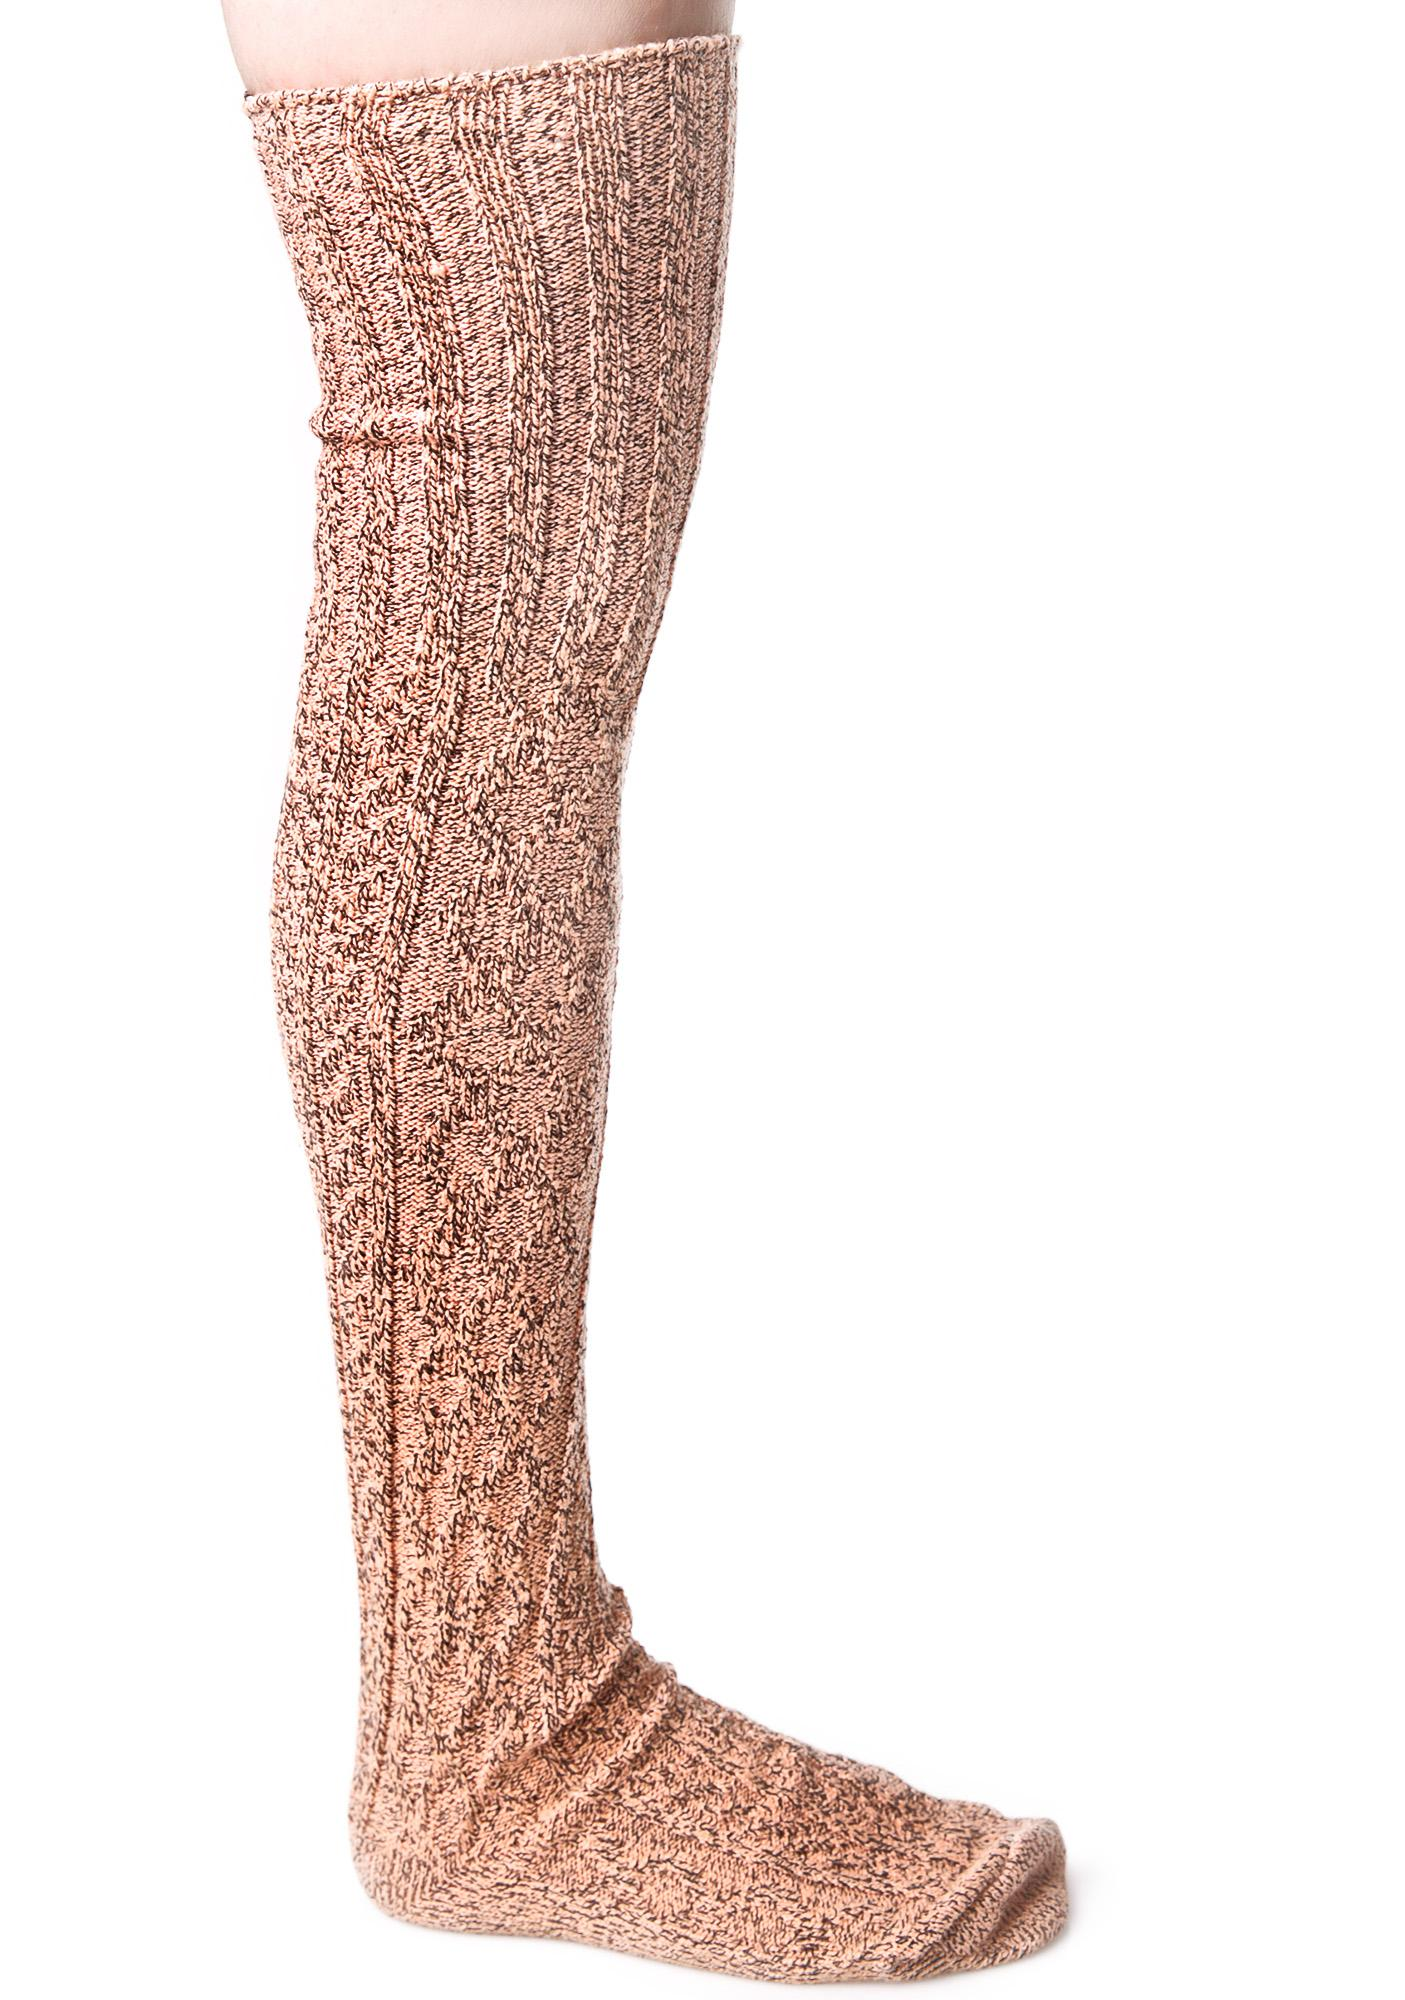 Tangelo Thigh High Socks